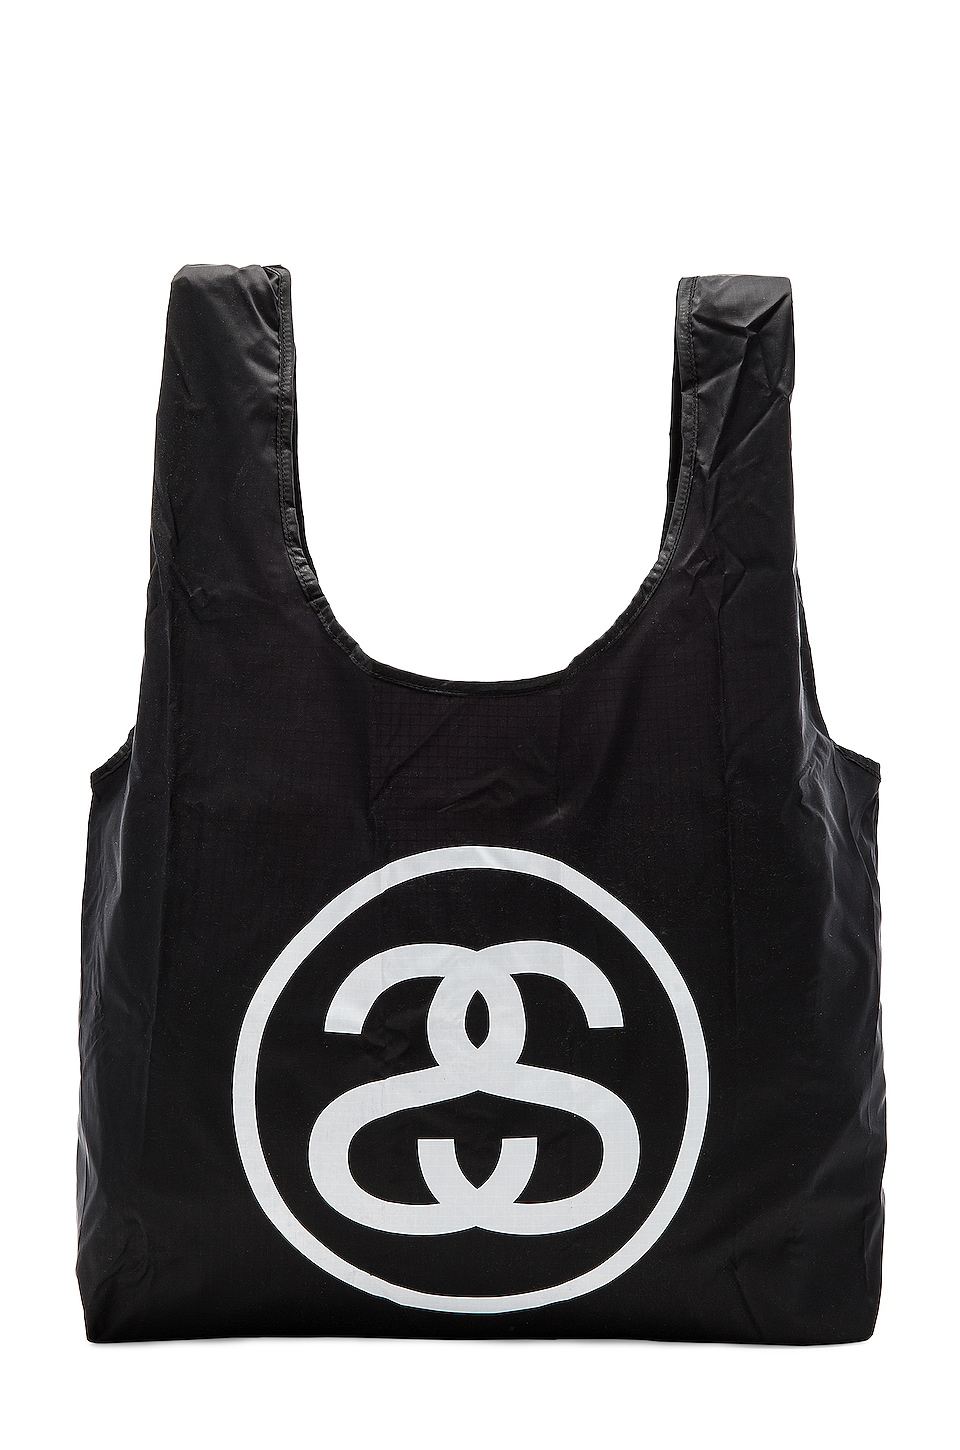 SS Link Fold Up Bag by Stussy